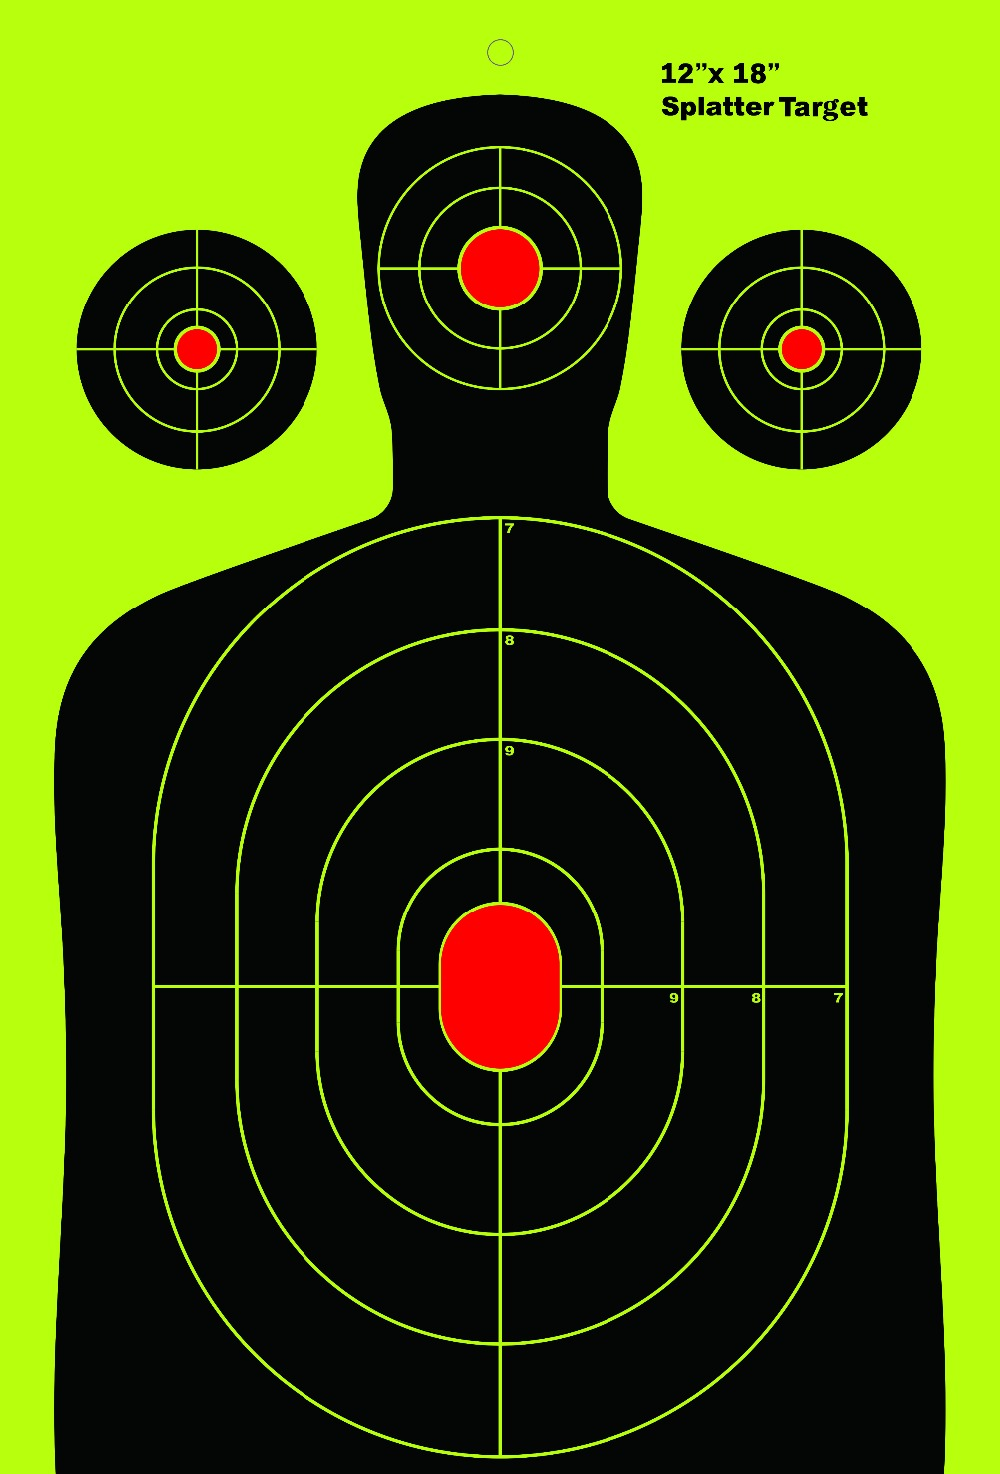 The Ultimate Reactive Splatter Targets For Shooting 25 pieces per pack 12 x 18 inches